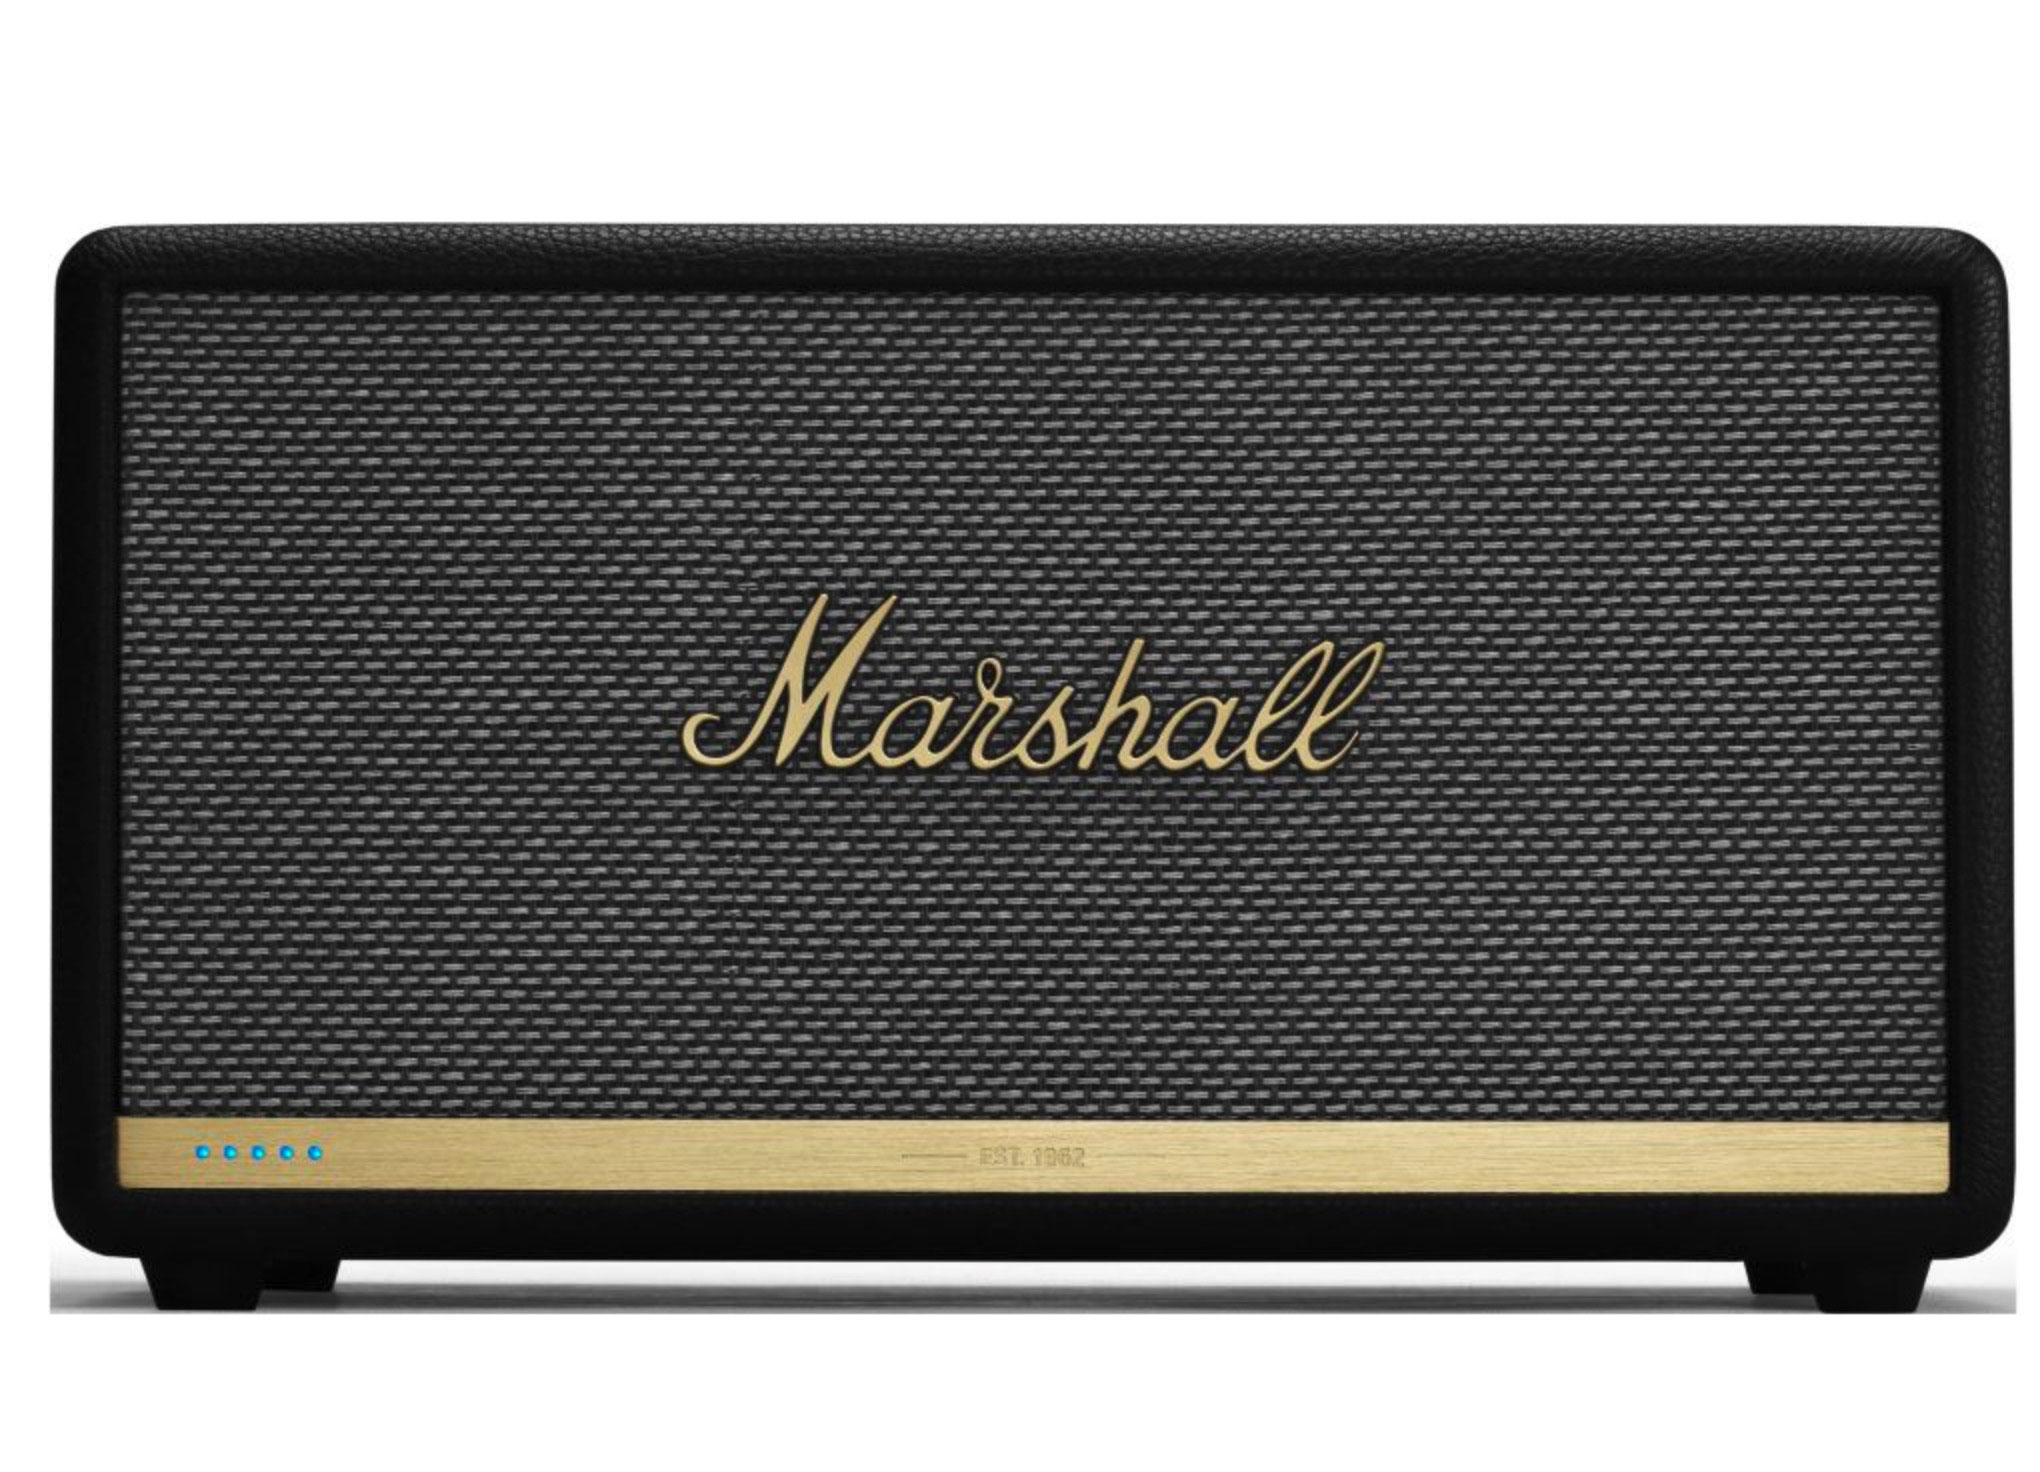 La Marshall Stanmore II, une enceinte qui a du style